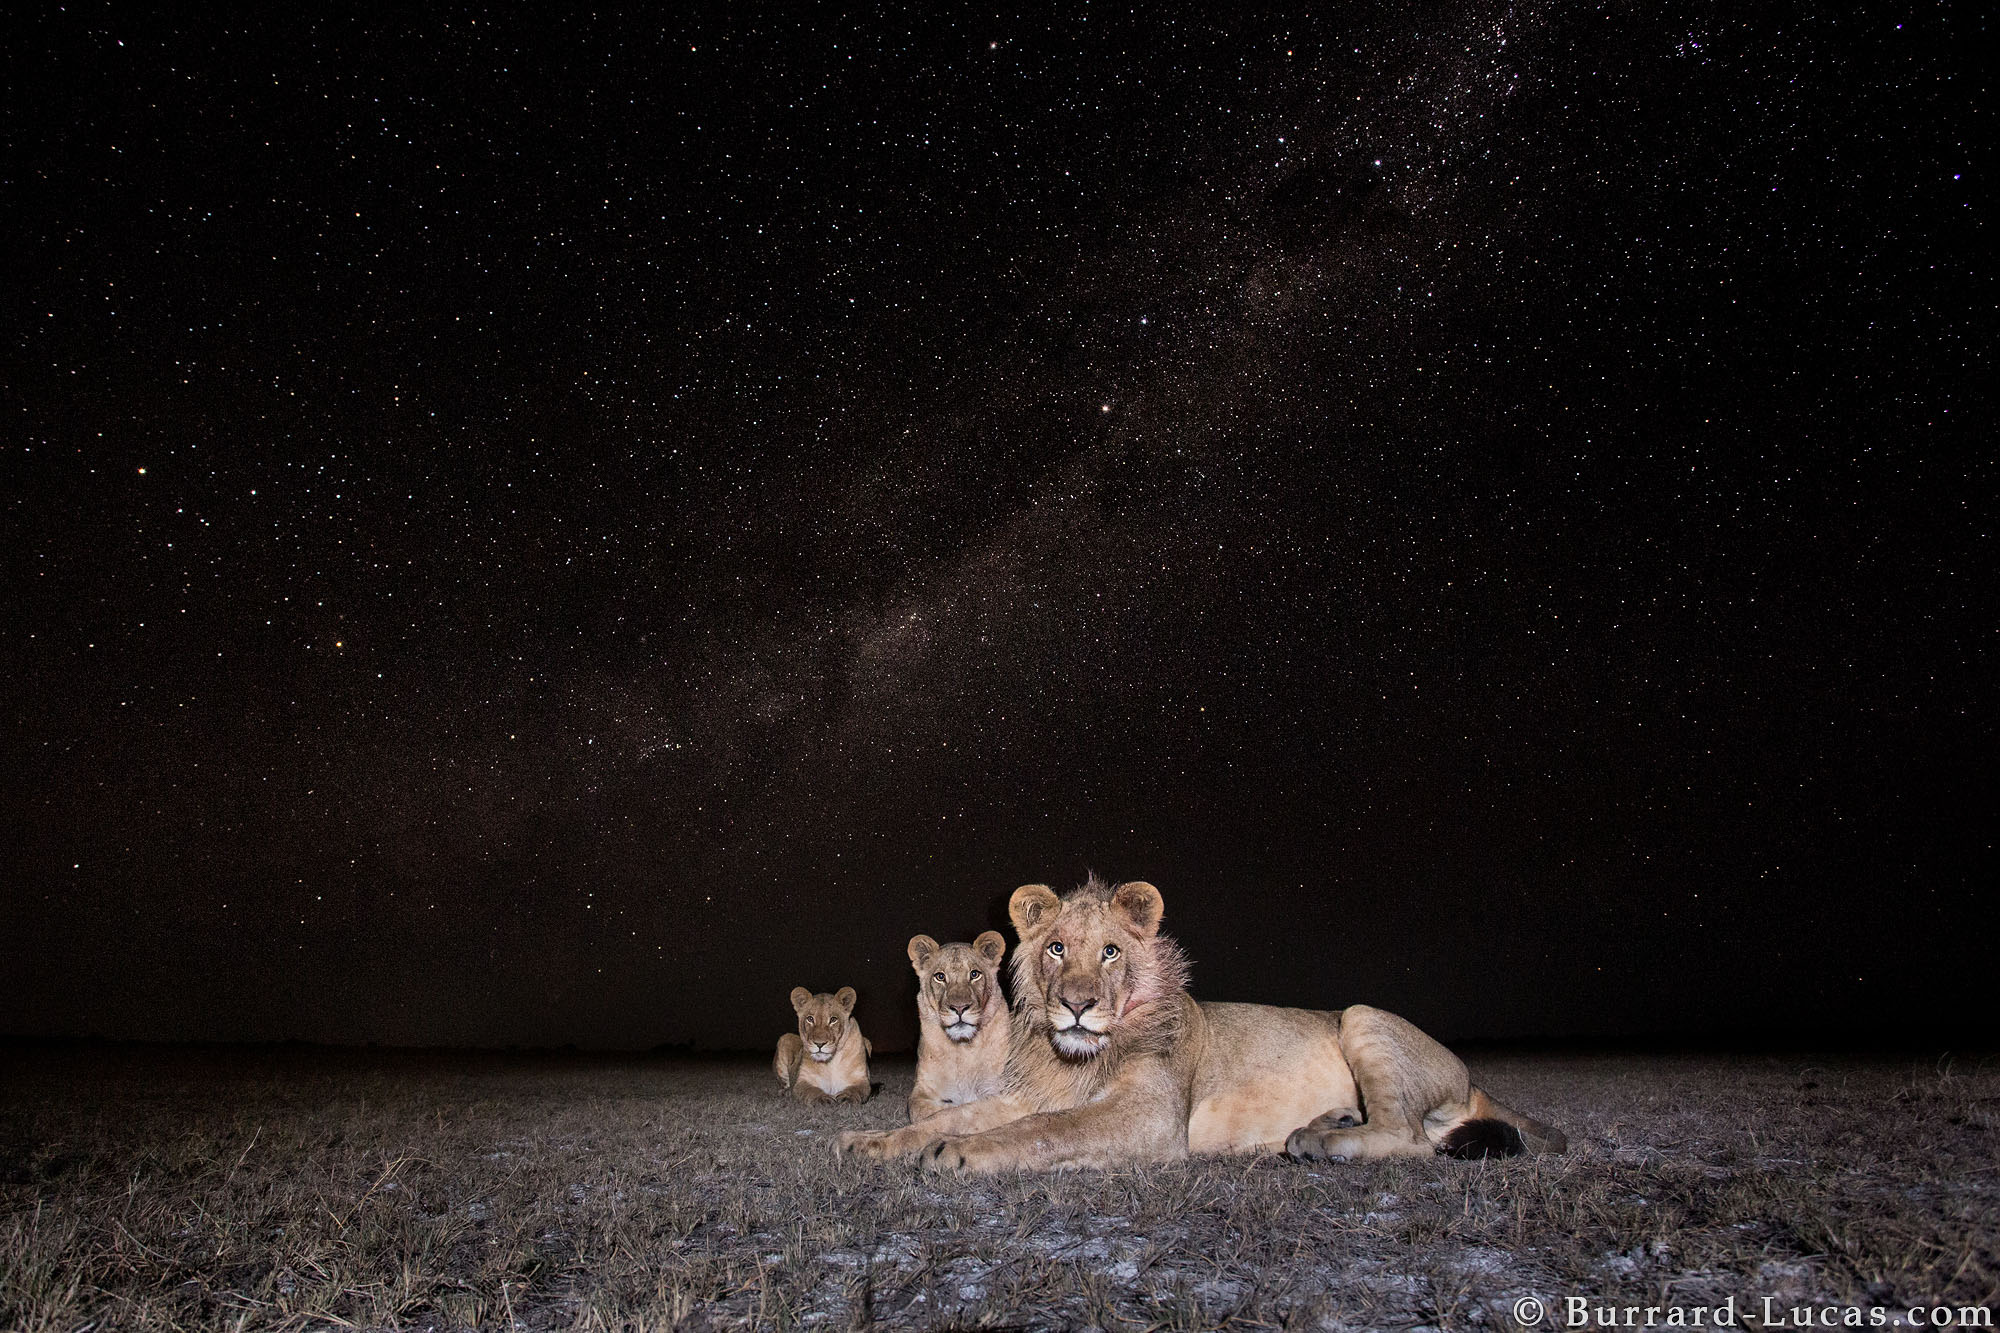 Image of: Zoo Burrardlucas Wildlife Photography Photographing Wildlife At Night In Liuwa Plain